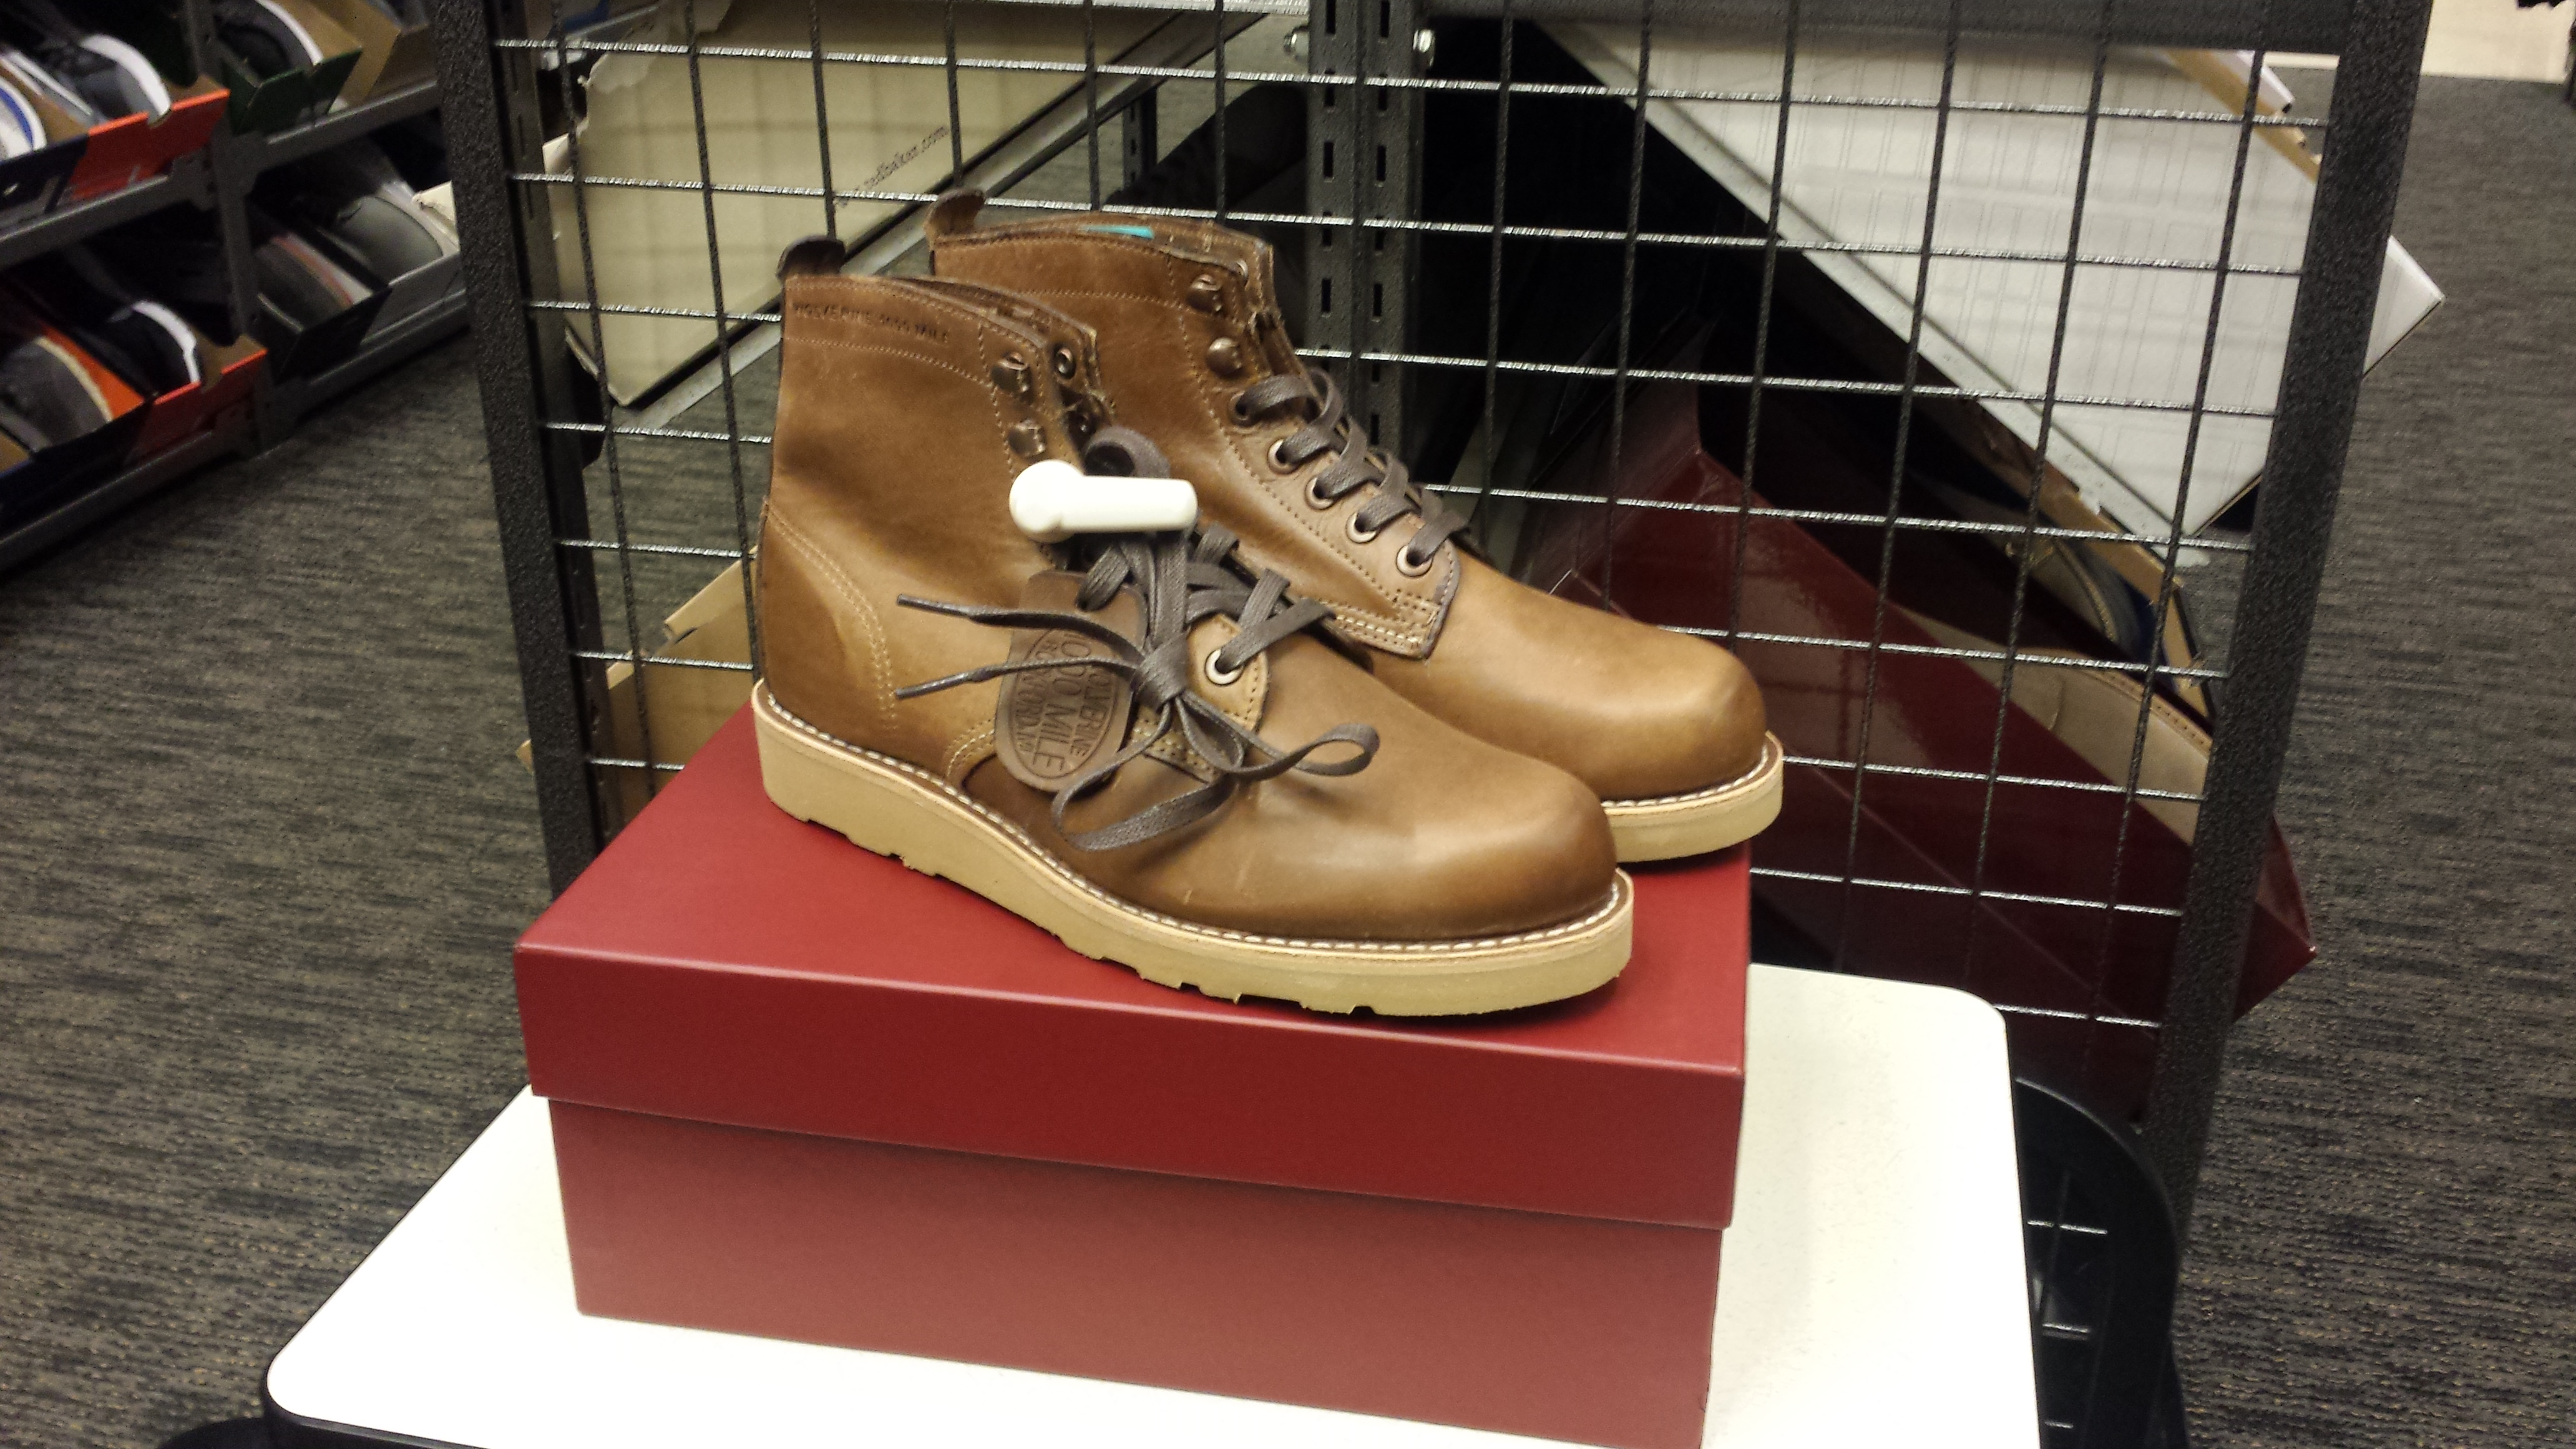 eecd7fba319 Wolverine 1000 Mile Boot Review | Page 501 | Styleforum